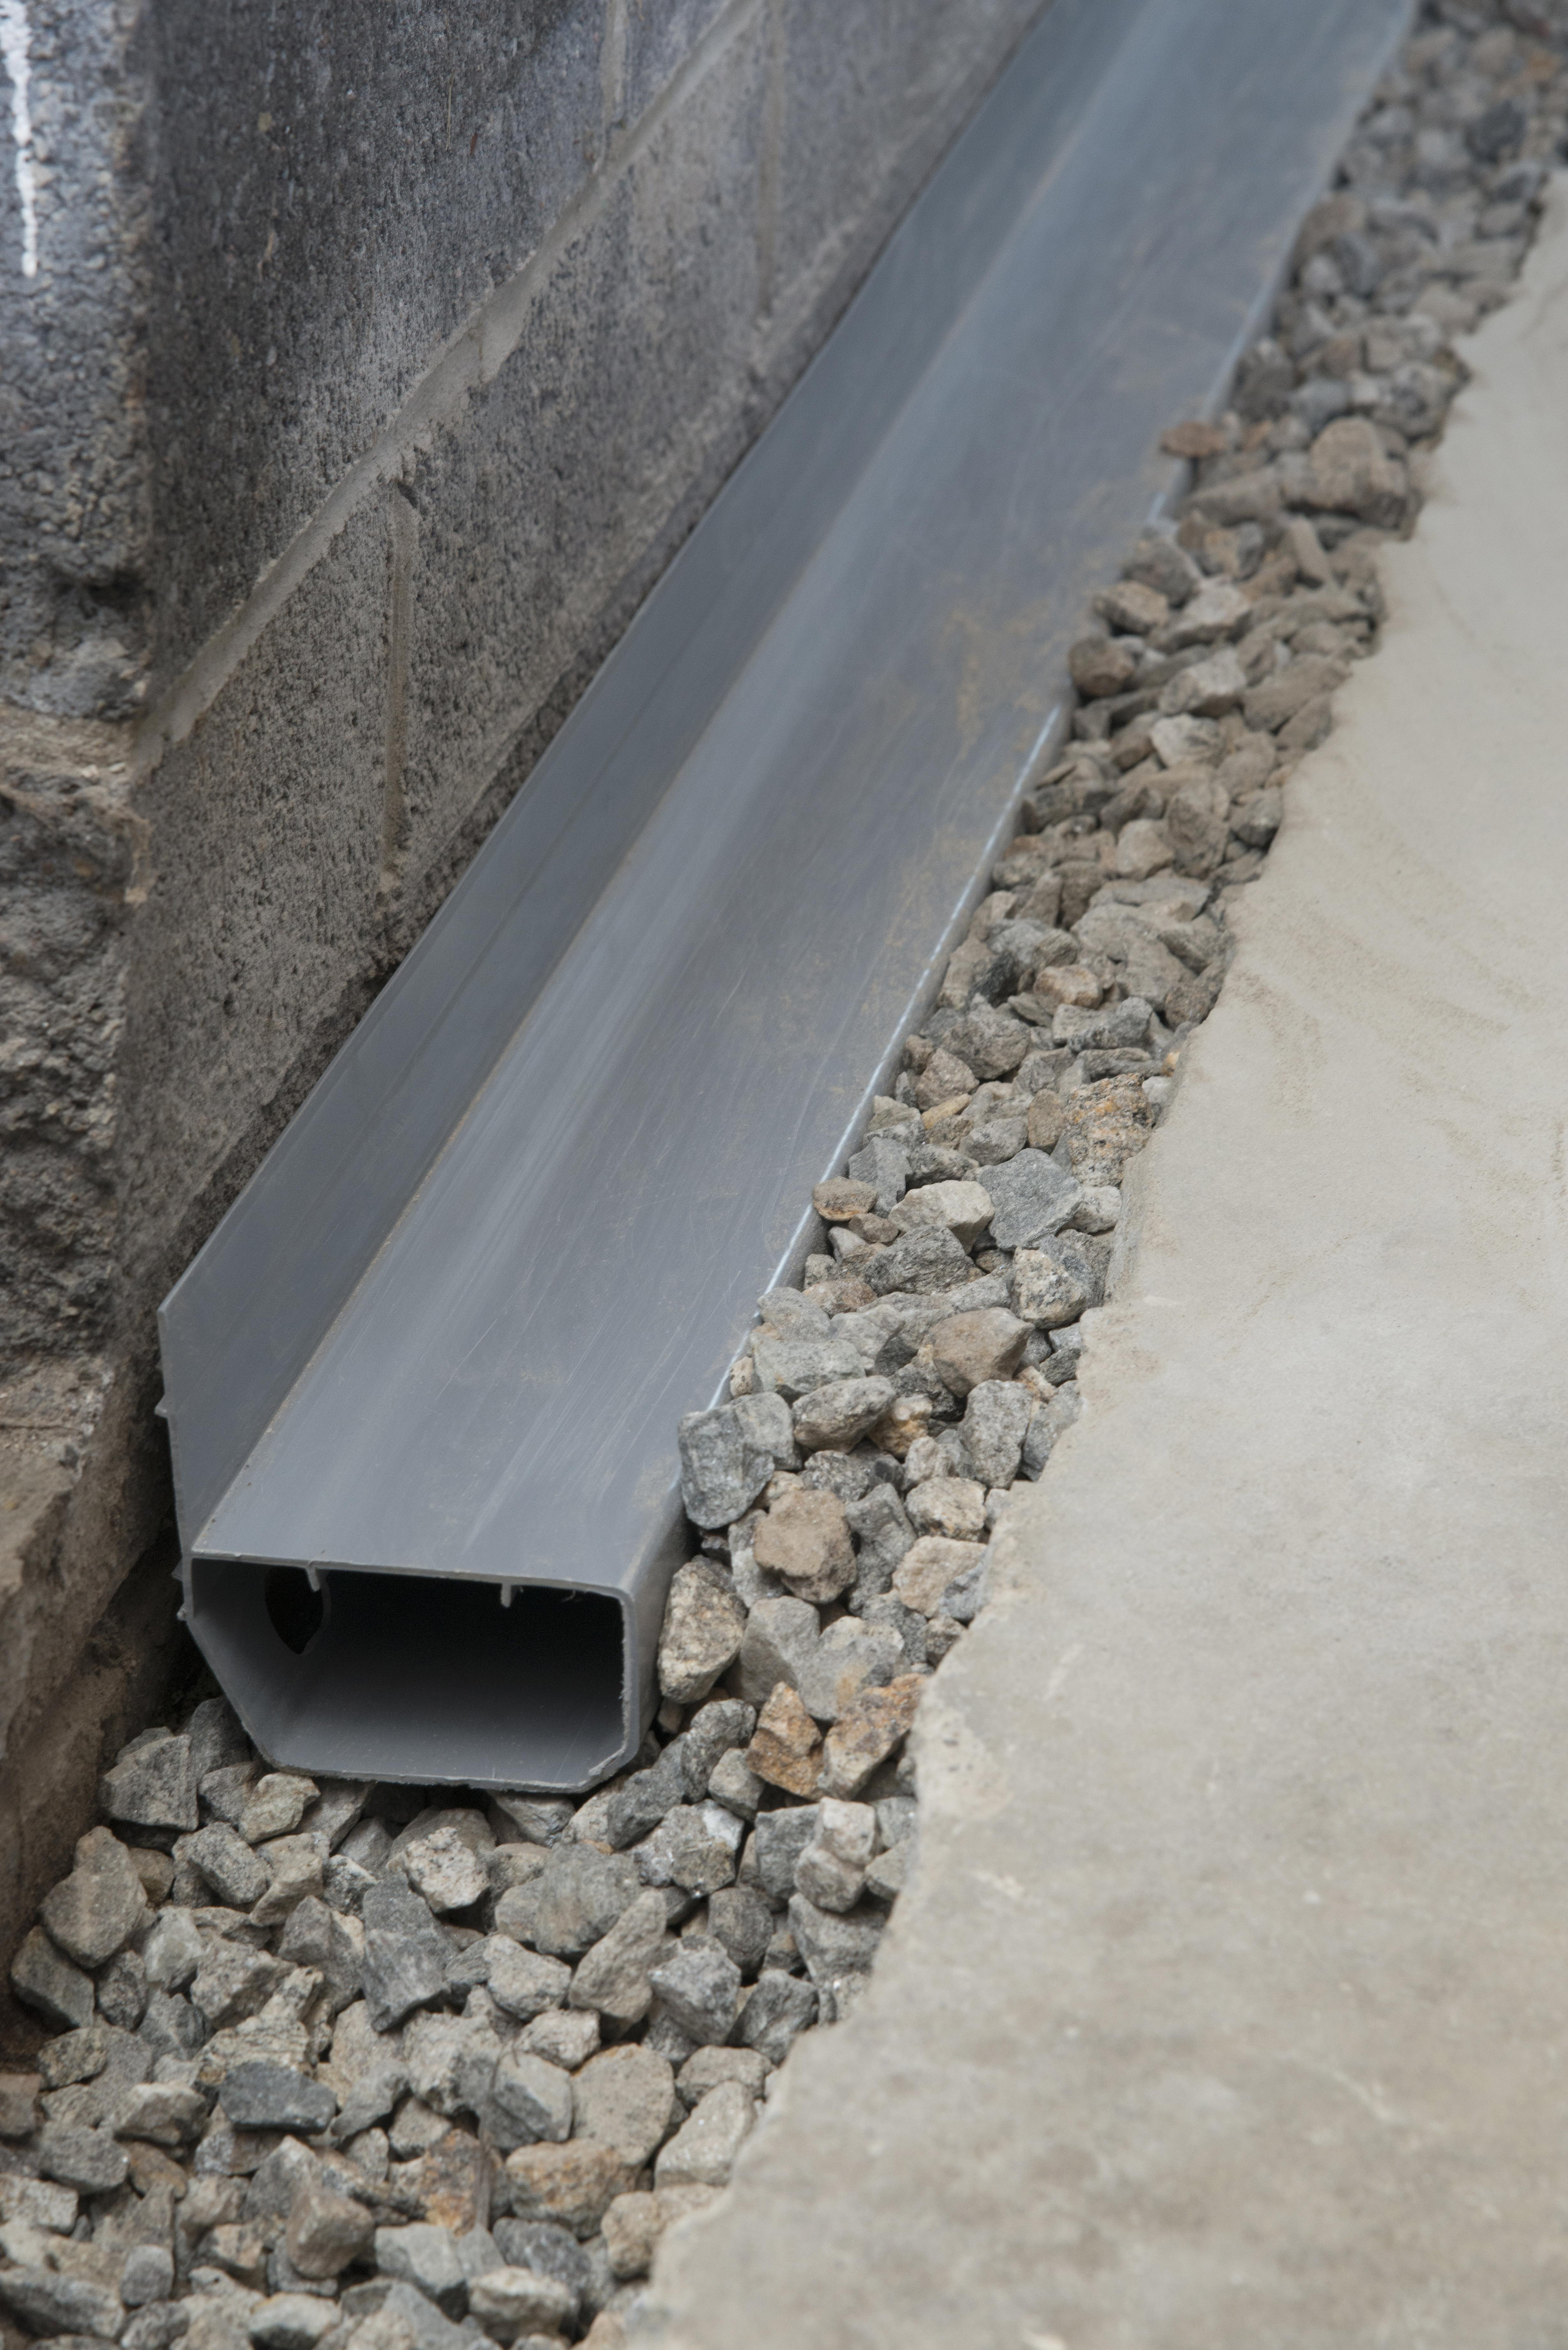 warrantied French Drain Products in Ohio